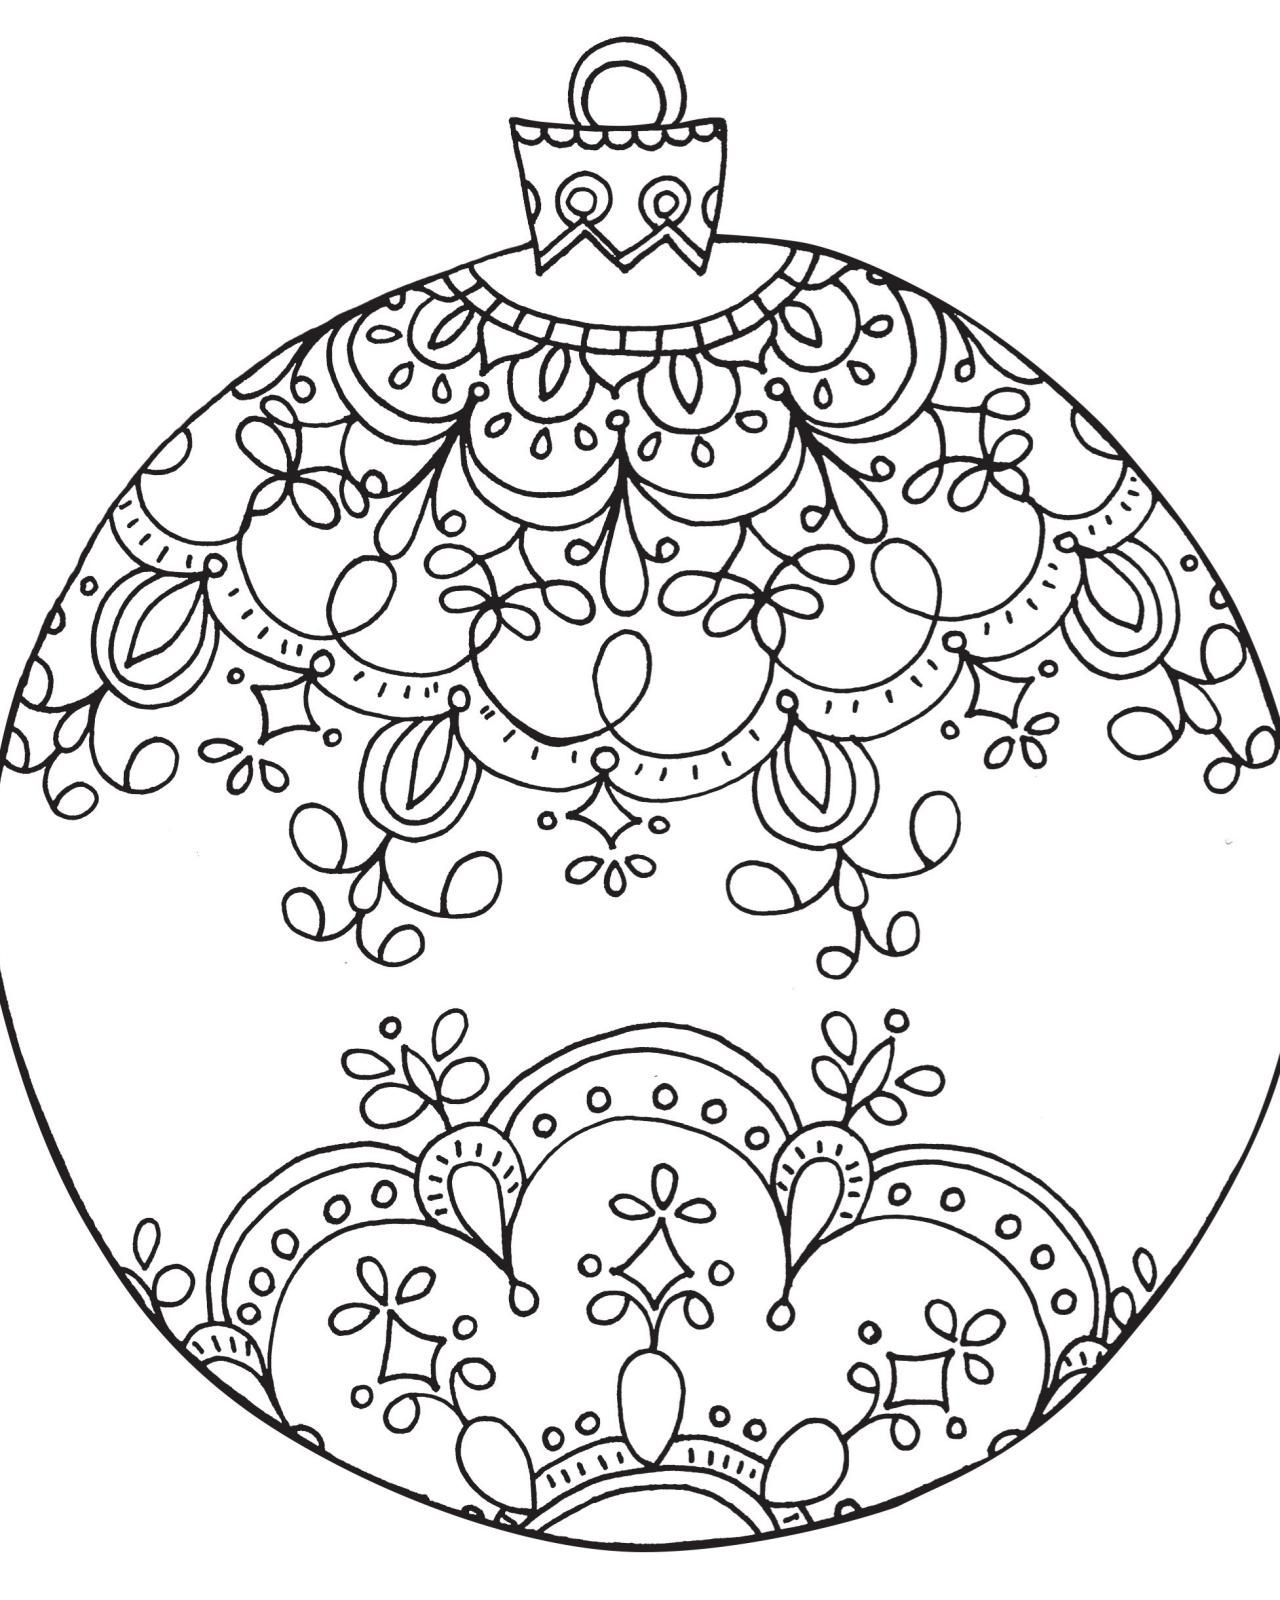 1280x1600 Printable Religious Christmas Adult Coloring Pages Adult Coloring